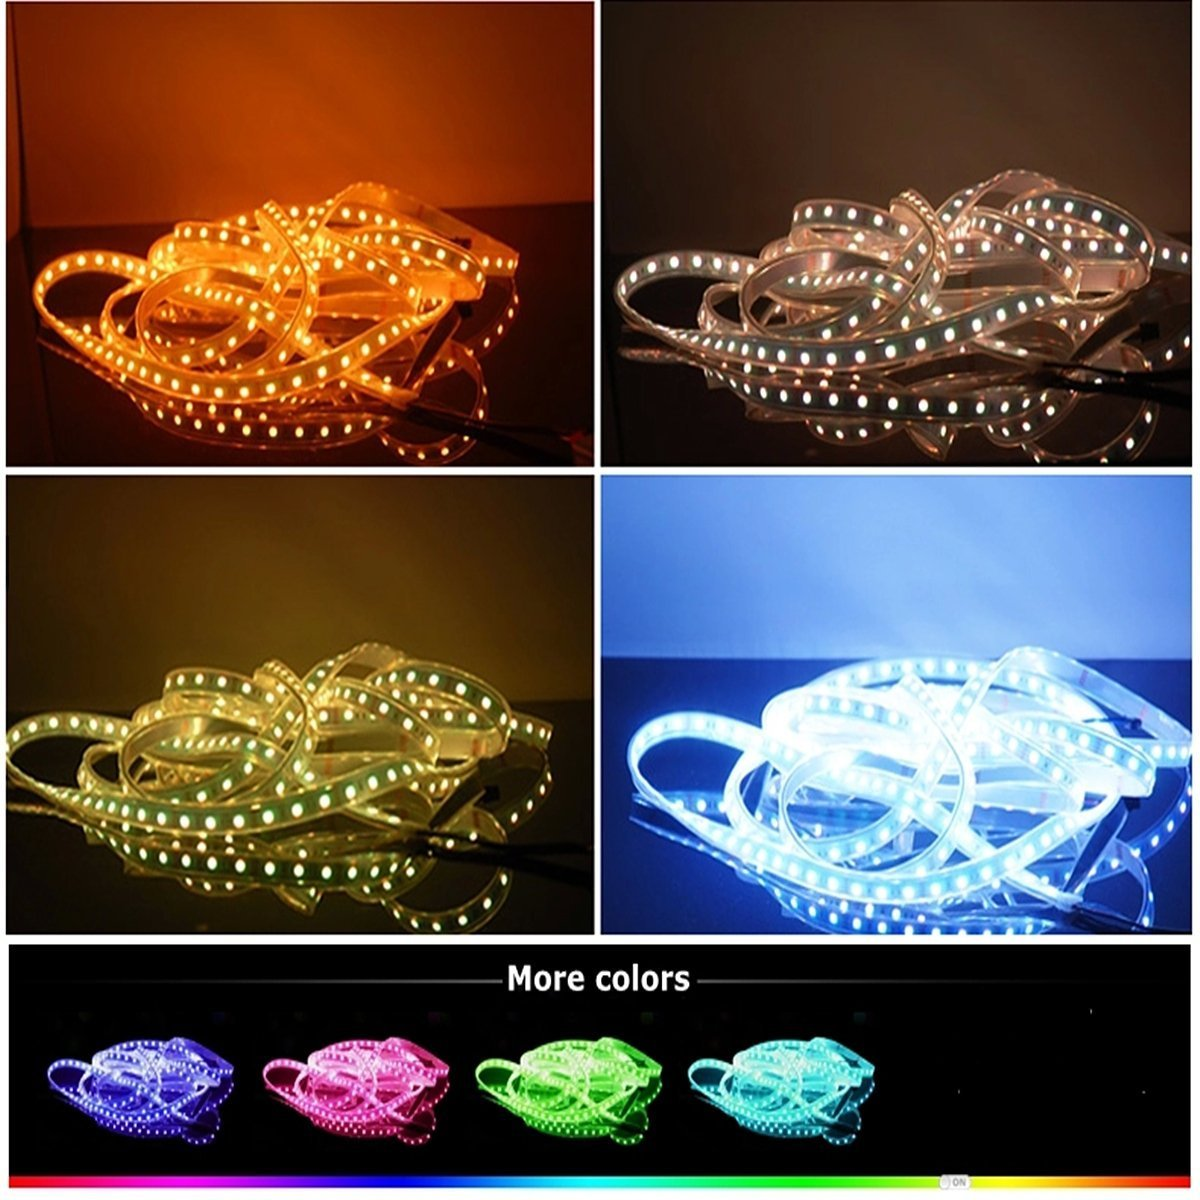 CARYLED 16.4ft 5M Waterproof Rope Lights 300 LED 5050 SMD Color Changing RGB Flexible LED Strip Light + 12V 6A Power Supply + Remote + IR Controller Muliticolored by CYLED (Image #3)